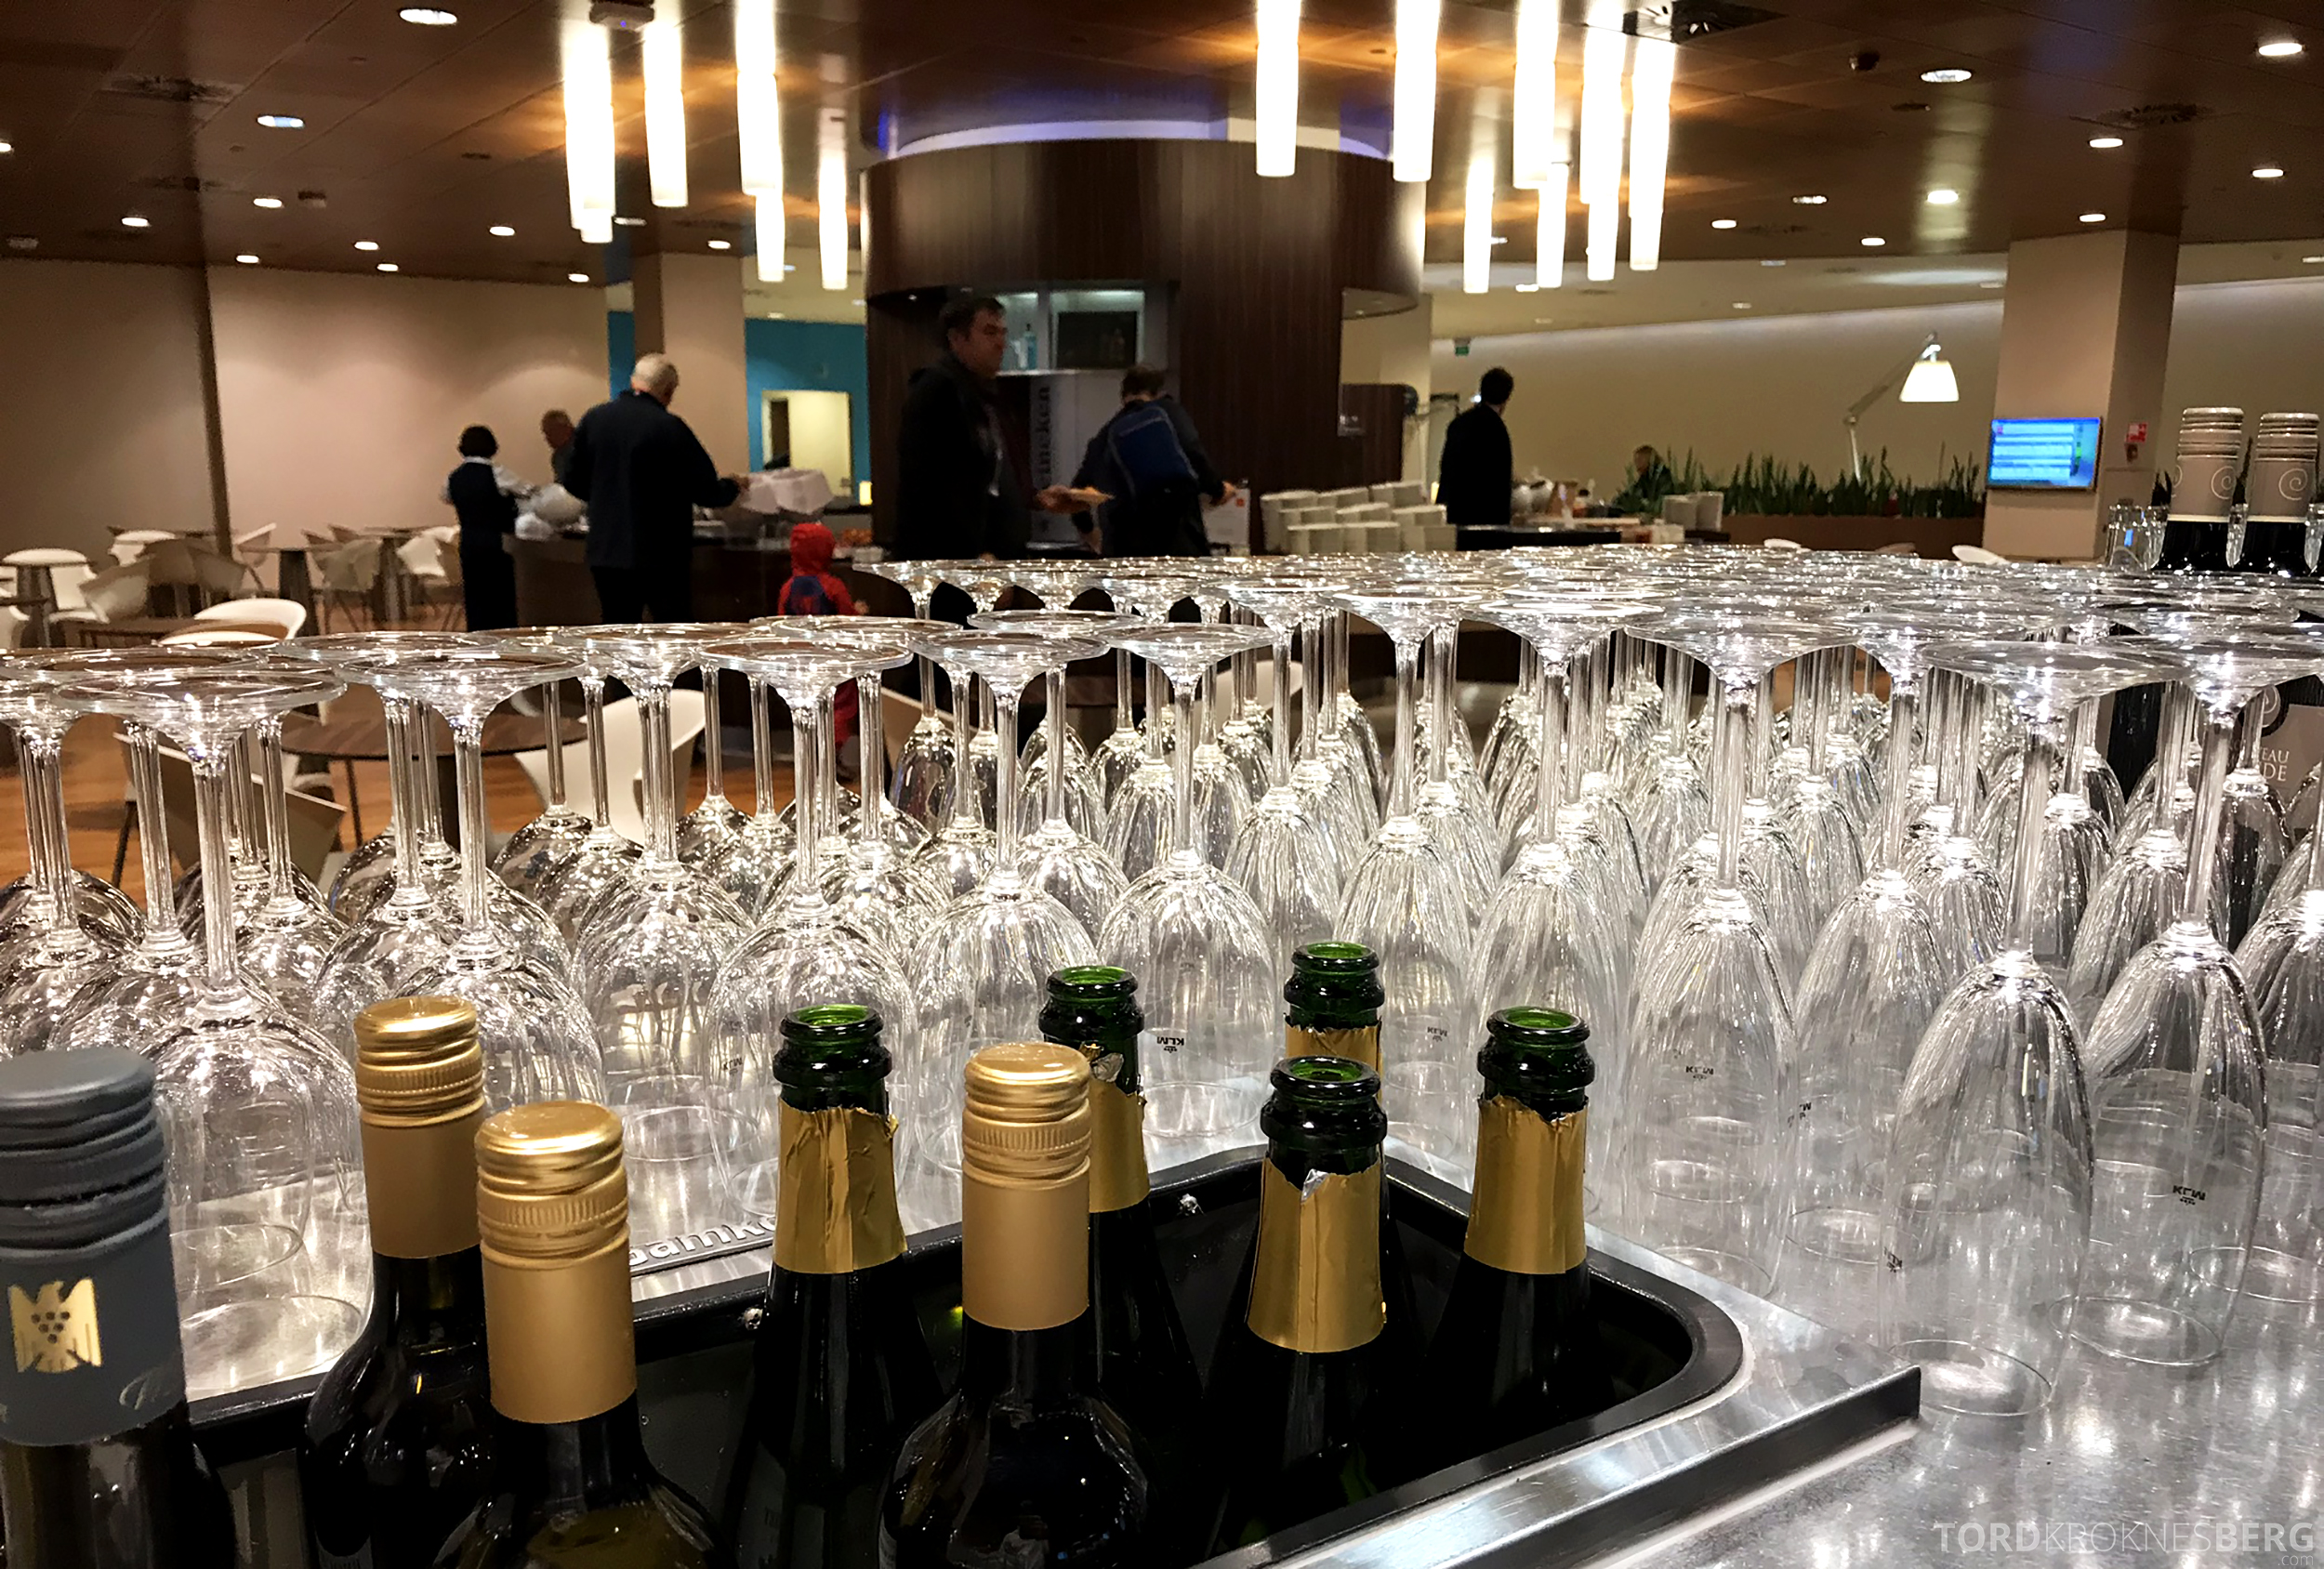 KLM Crown Lounge Schiphol Amsterdam champagne